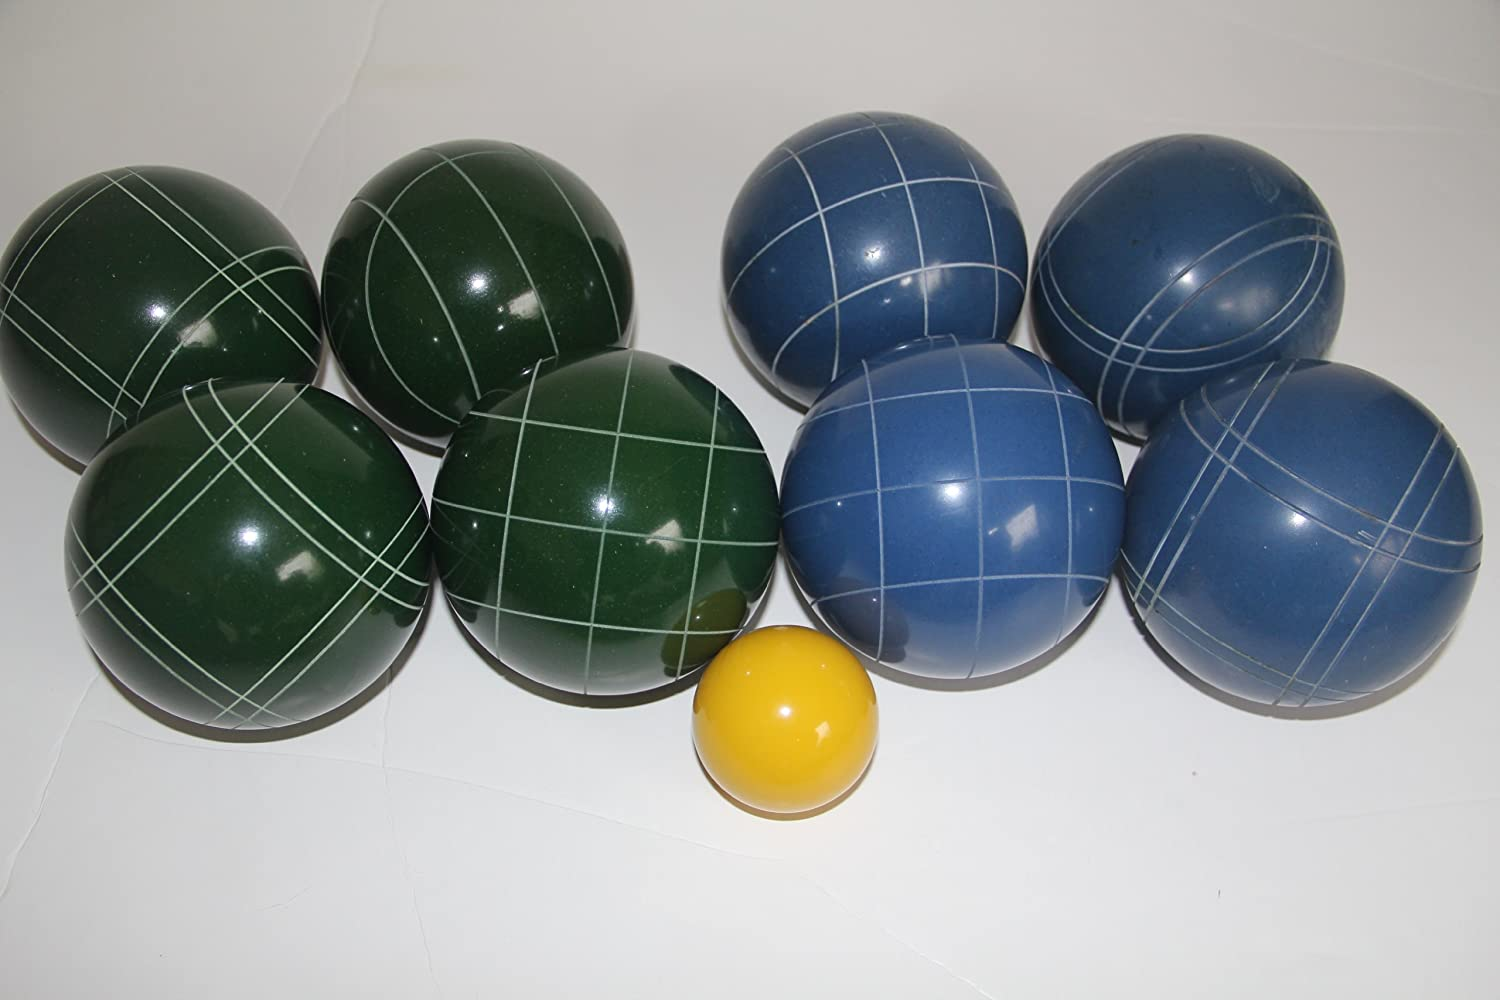 Premium Quality EPCO Tournament Bocce Set – 110mm Blue and Green Bocce Balls … bestellen